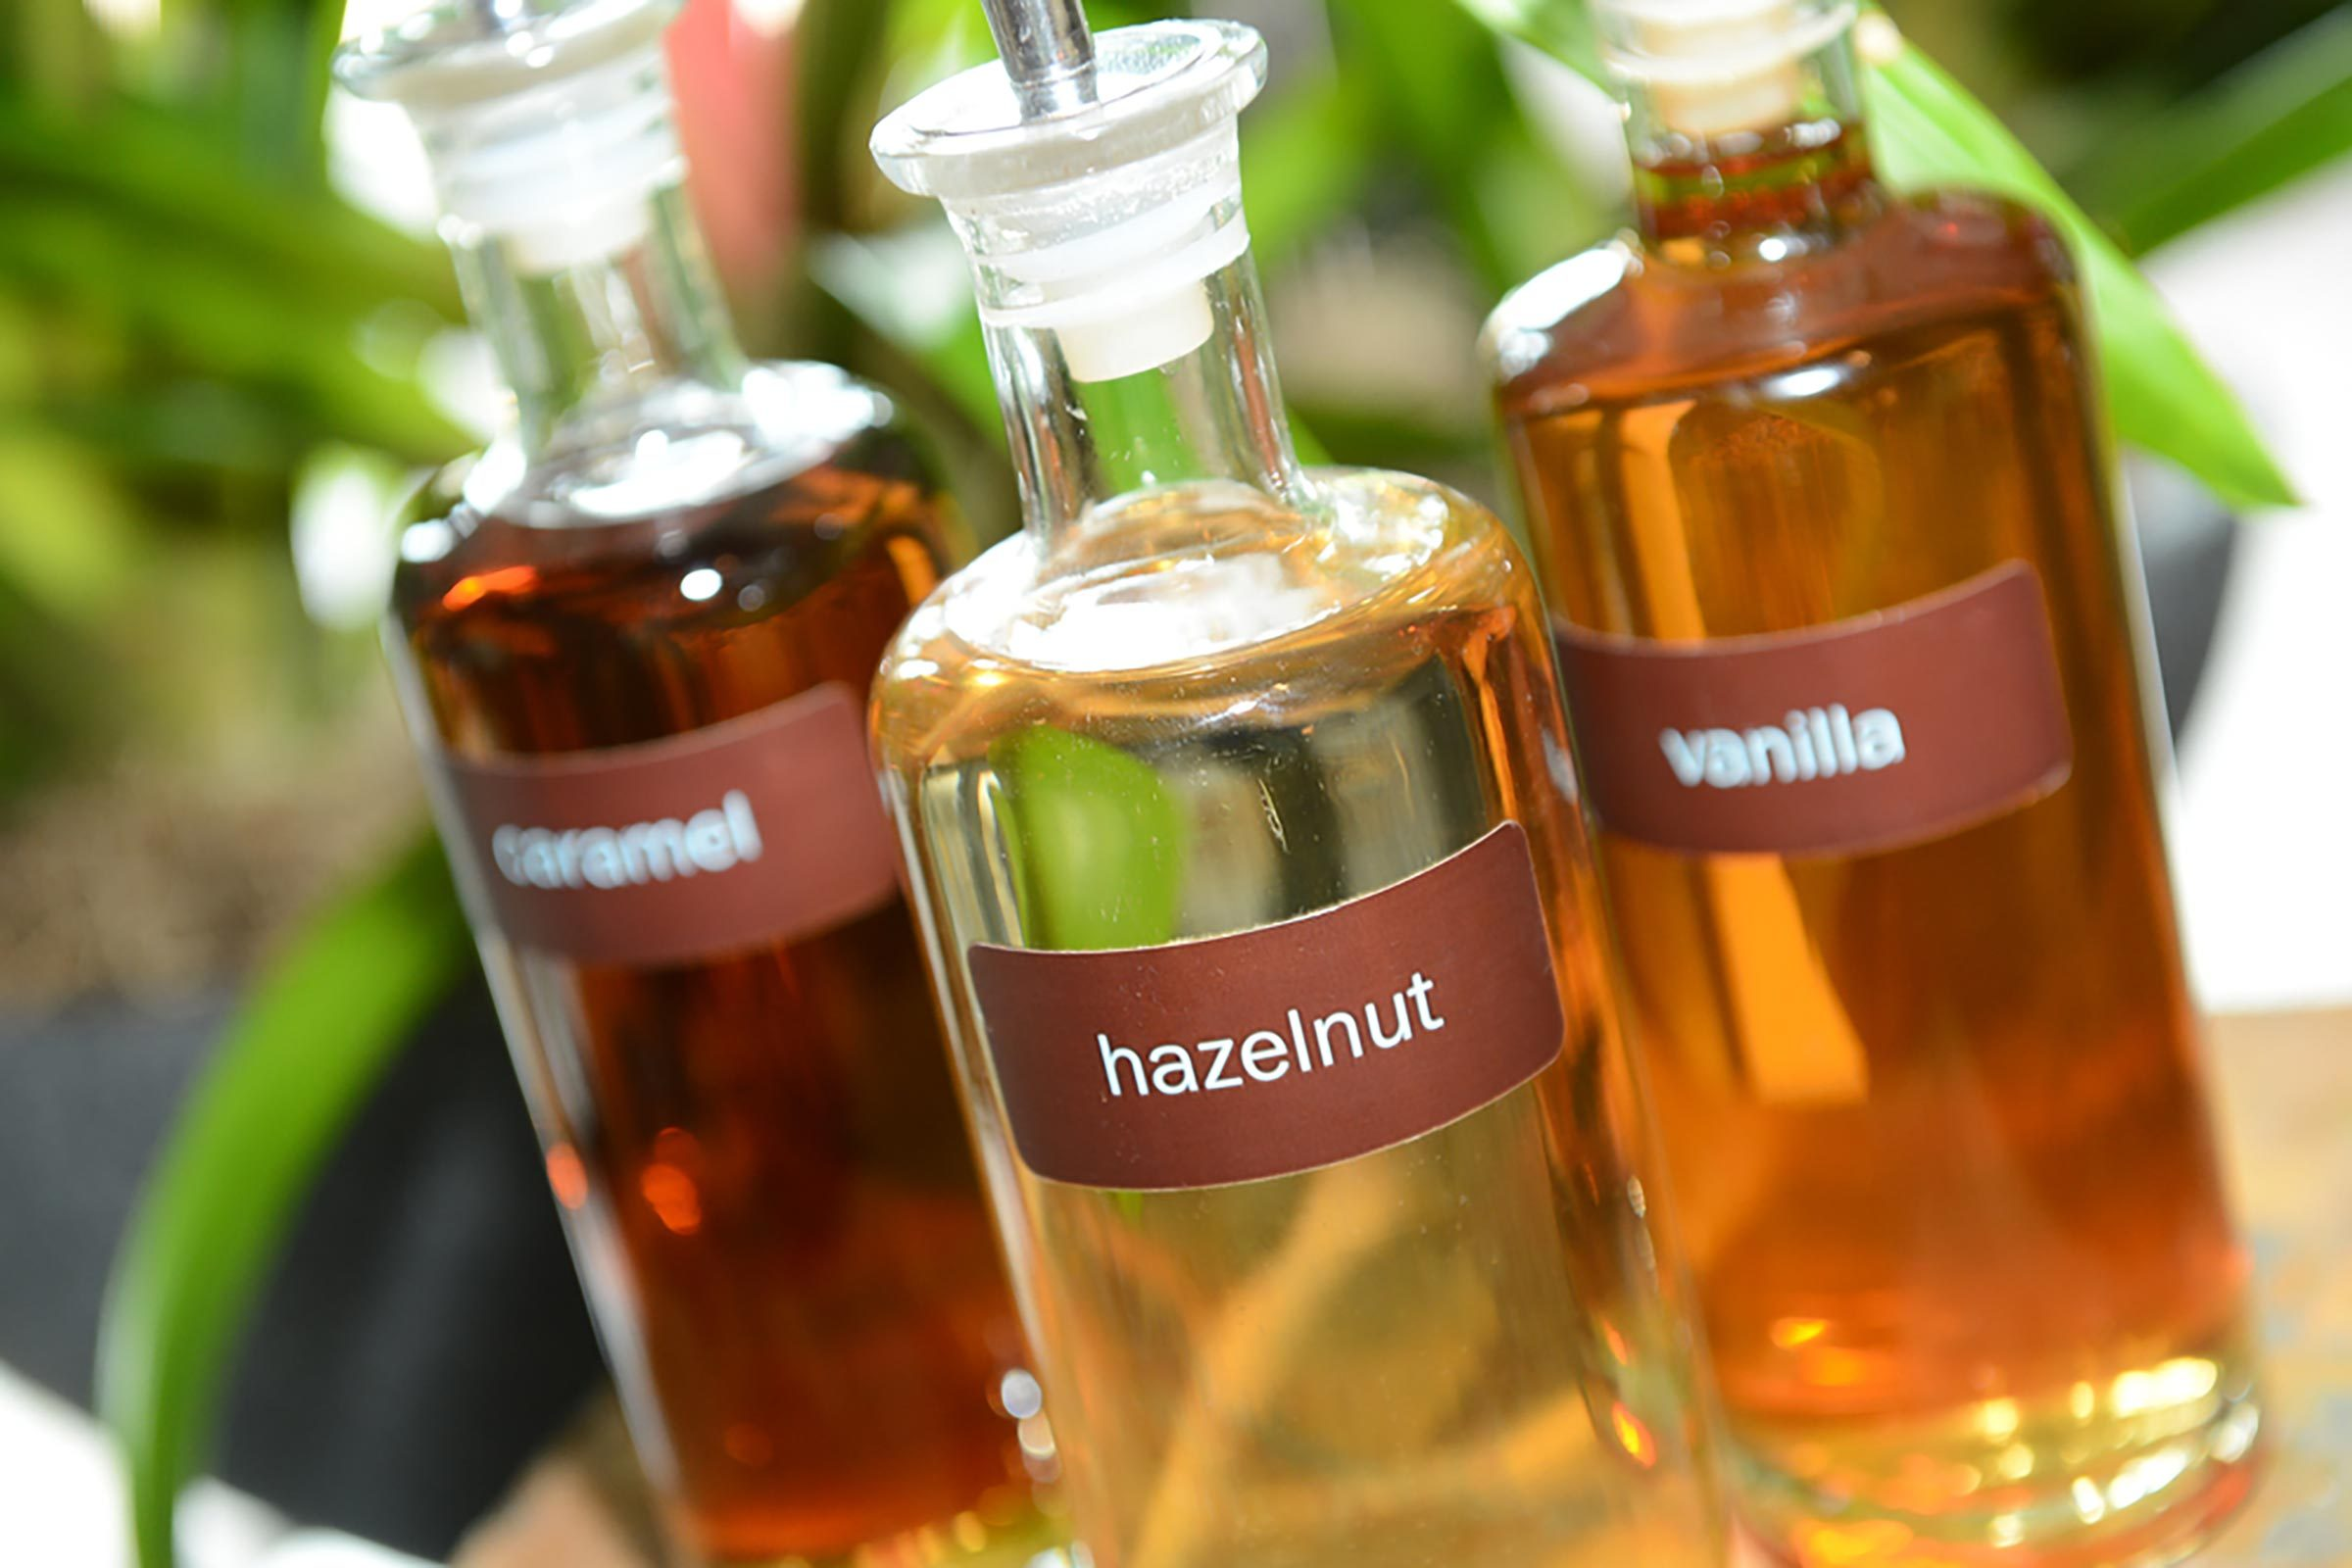 Syrups in glass containers